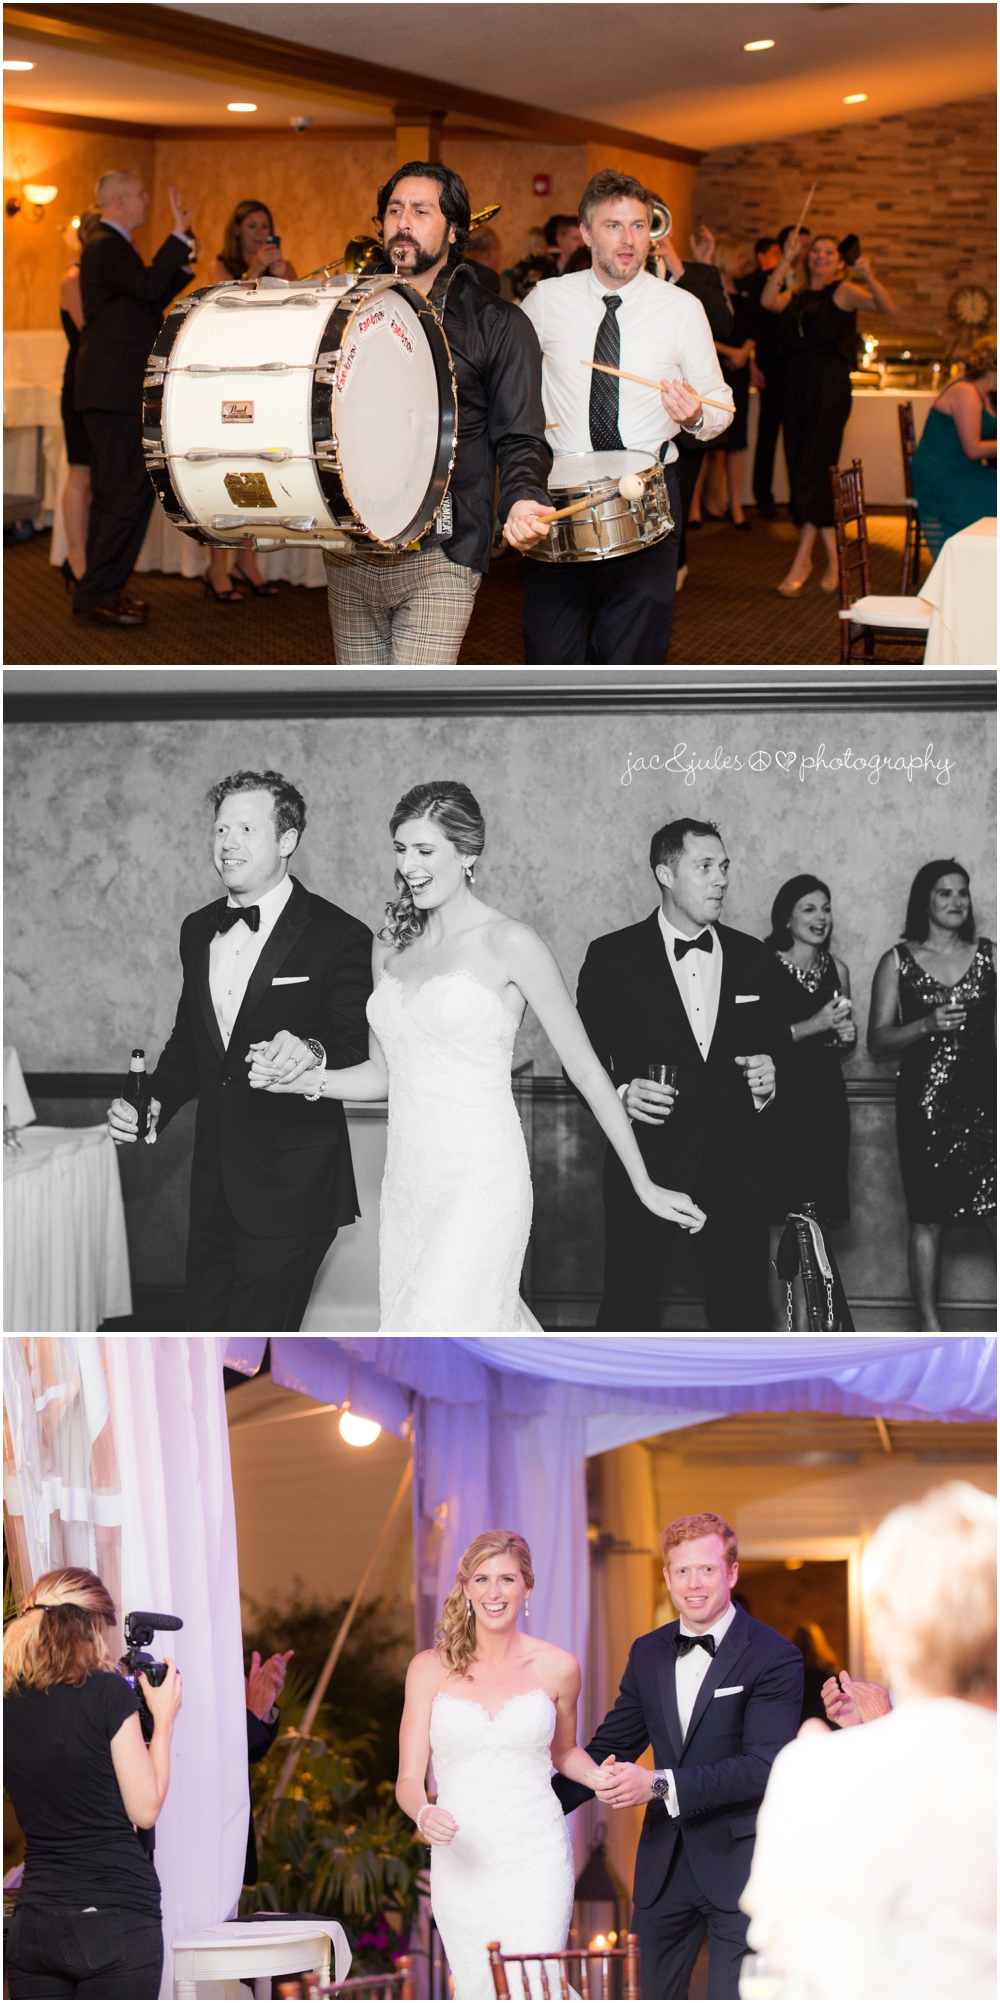 jacnjules photographs wedding entrances and first dance at windows on the water at frogbridge